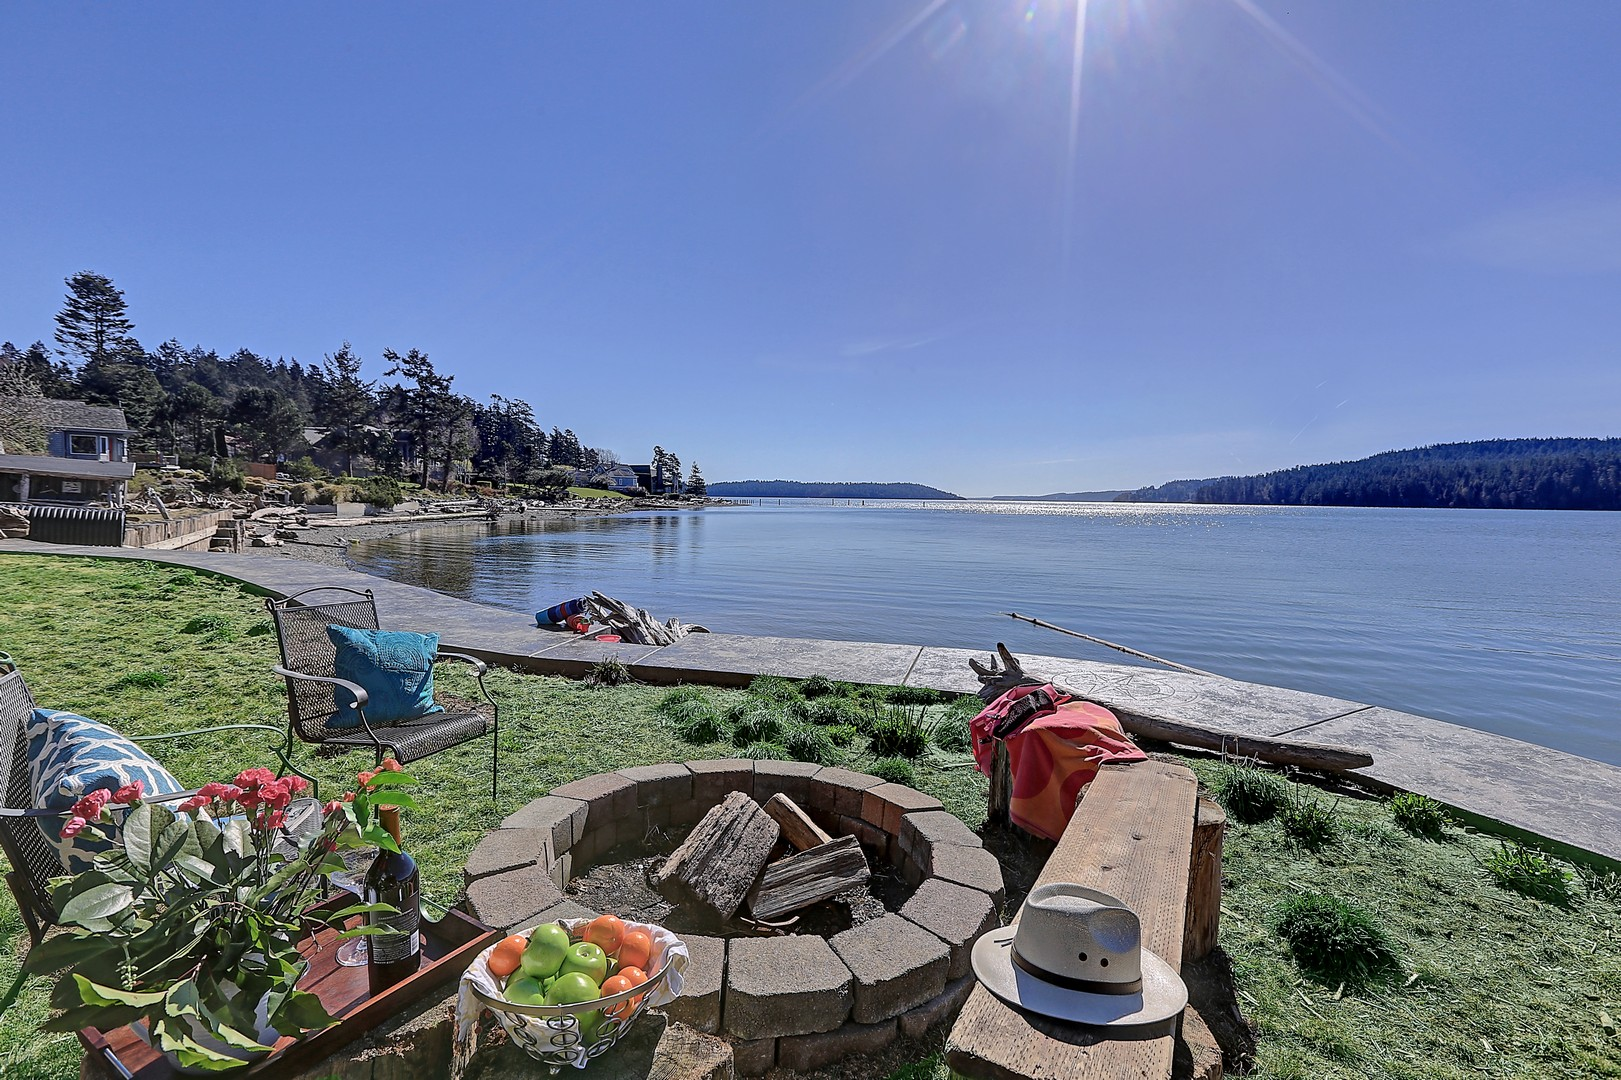 Single Family Home for Sale at Private Cove on Sandy Dewey Beach 15247 Gibralter Rd Anacortes, Washington, 98221 United States